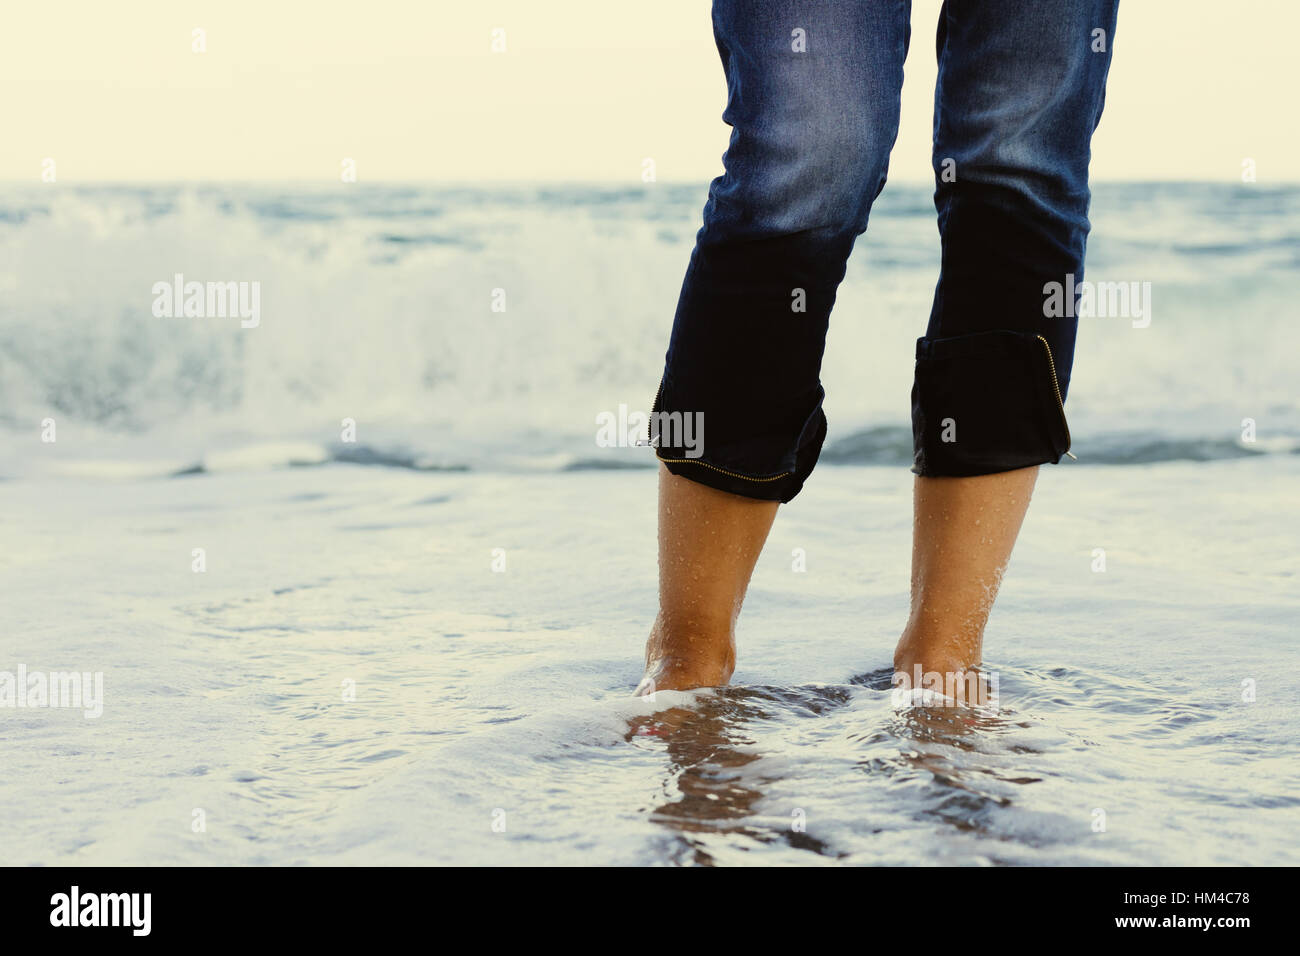 Female legs in jeans standing in the sea water on the background of a breaking wave. Stock Photo